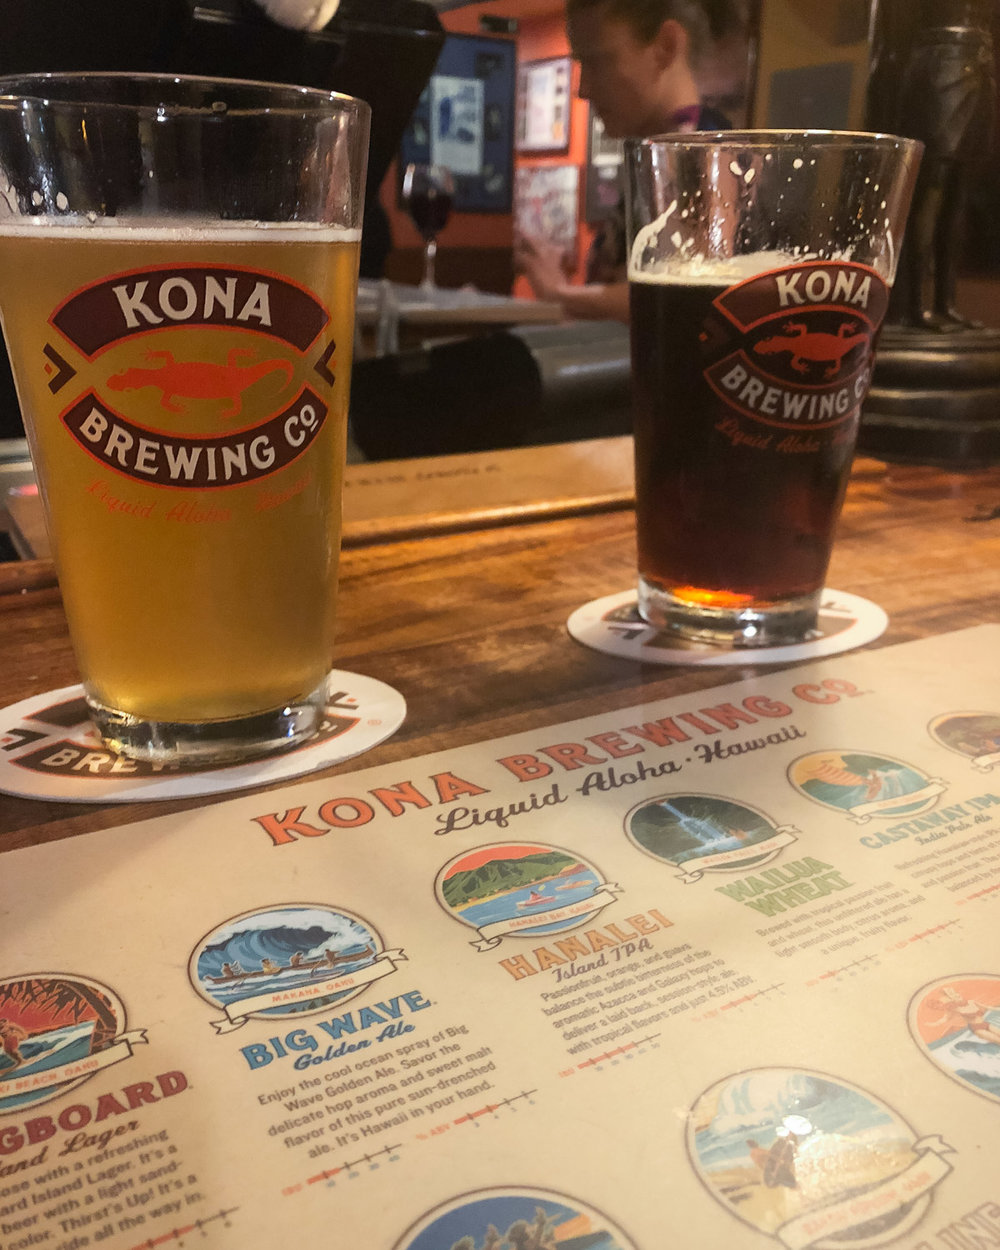 Enjoy a flight (make sure to try the Koko Brown!) -  Kona Brewing